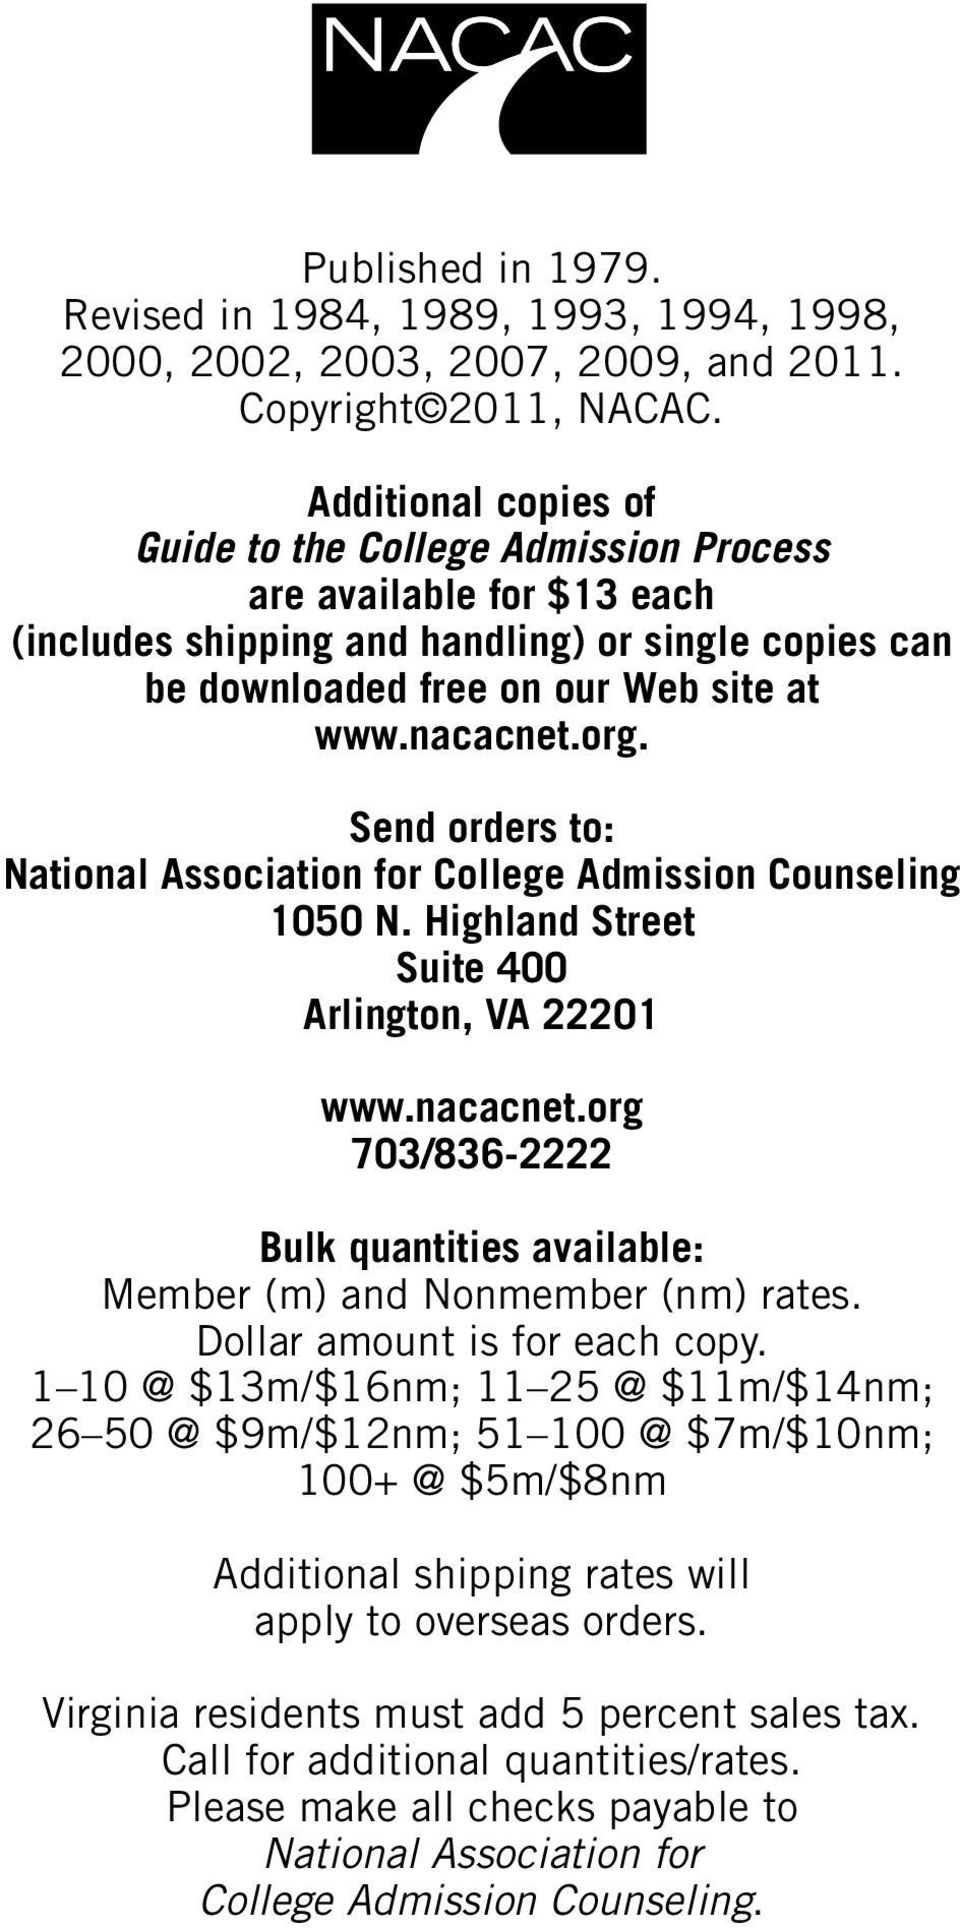 Send orders to: National Association for College Admission Counseling 1050 N. Highland Street Suite 400 Arlington, VA 22201 www.nacacnet.